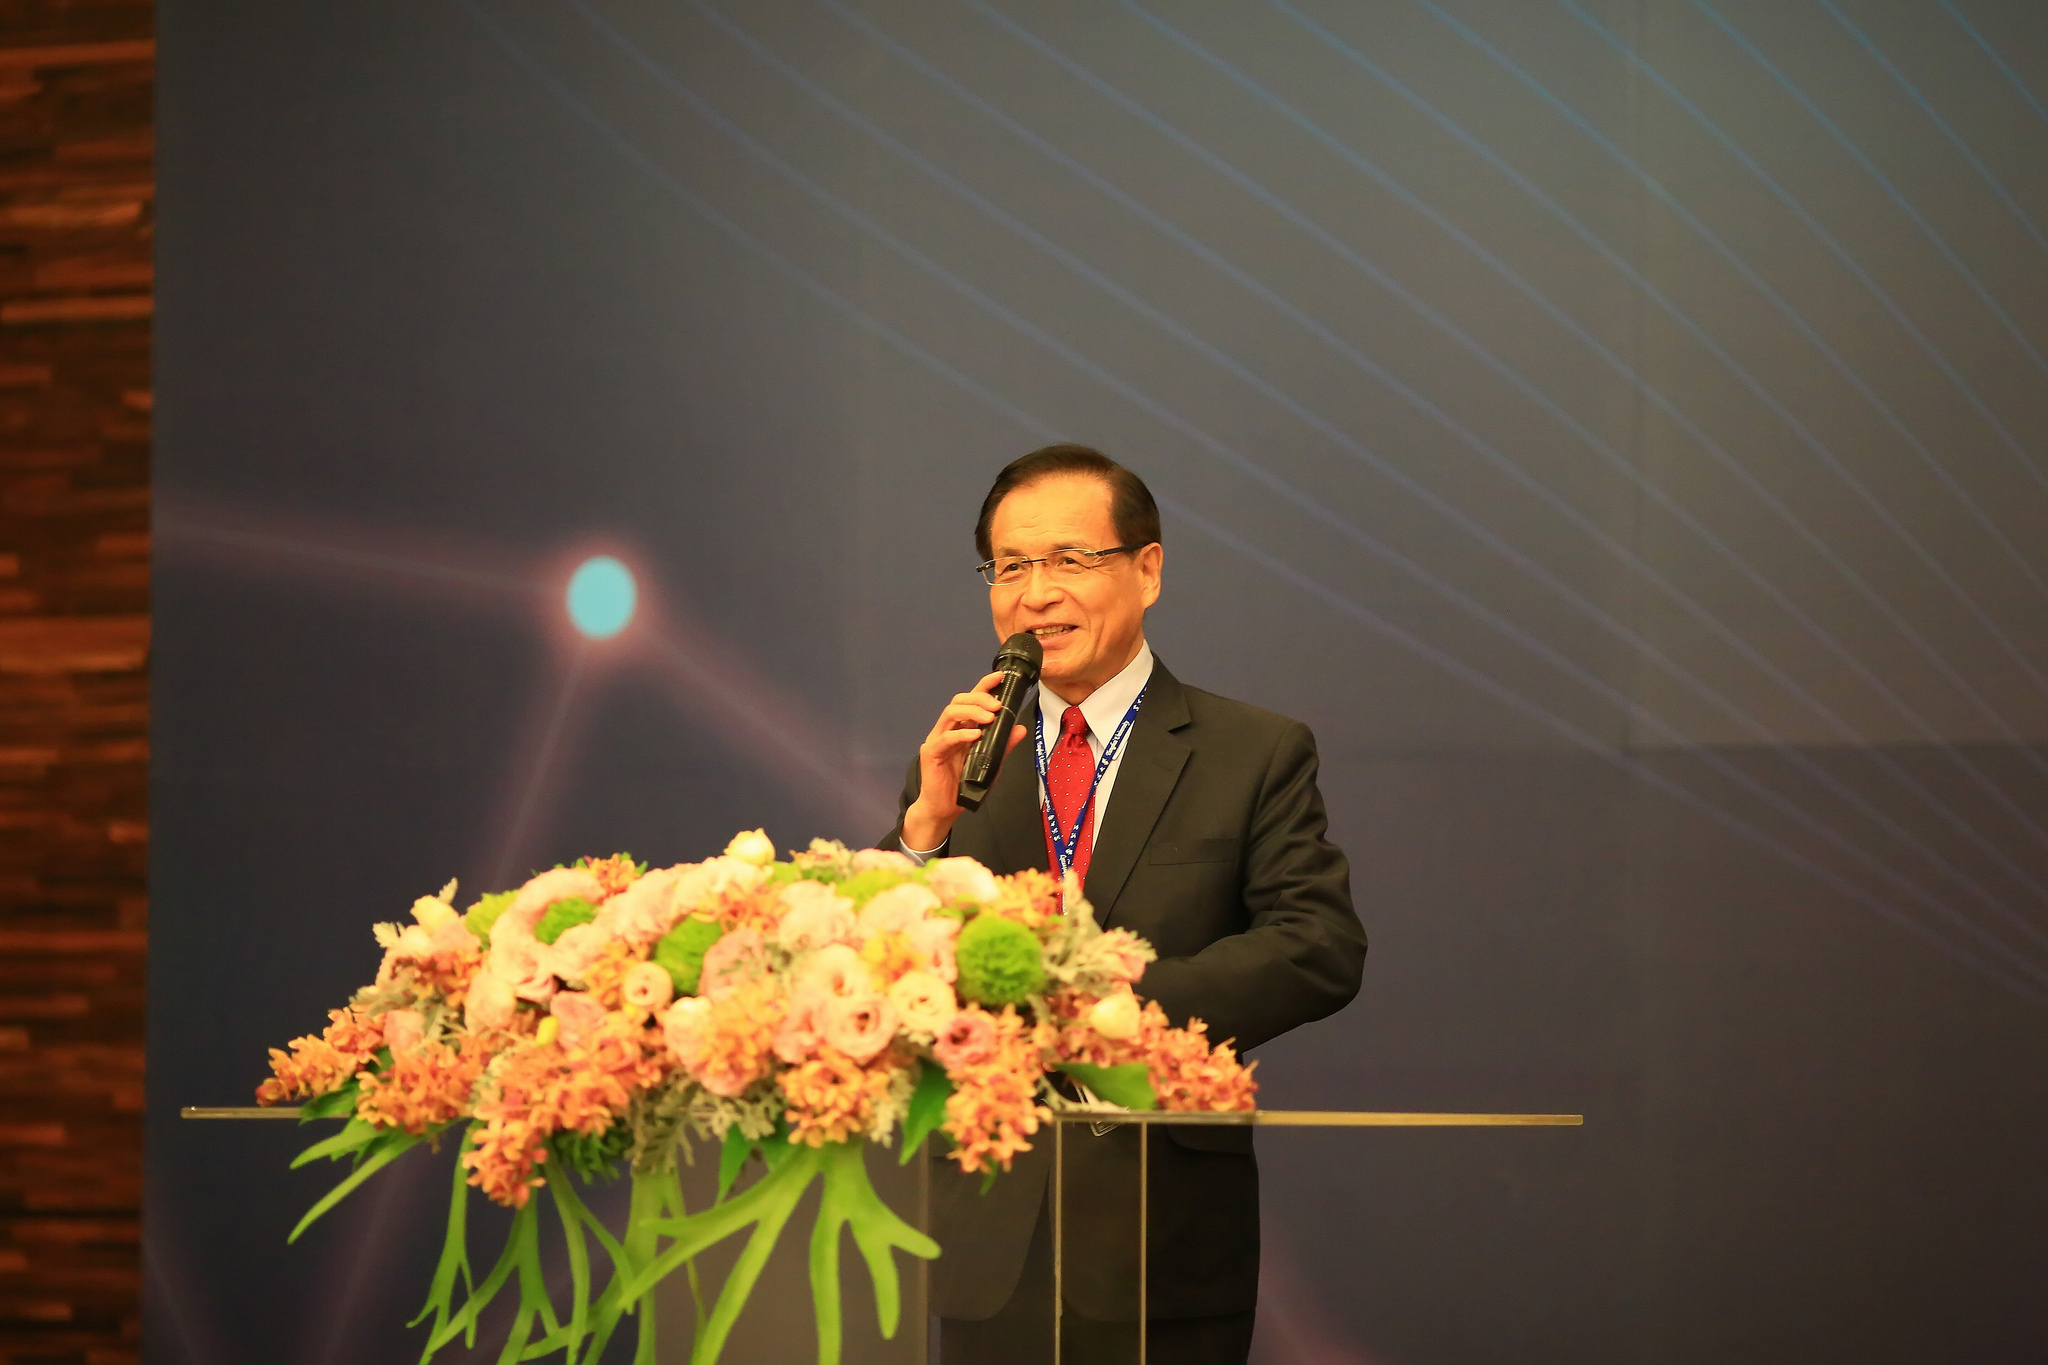 Chairman Tain-Tsair Hsu of Commerce Development Research Institute